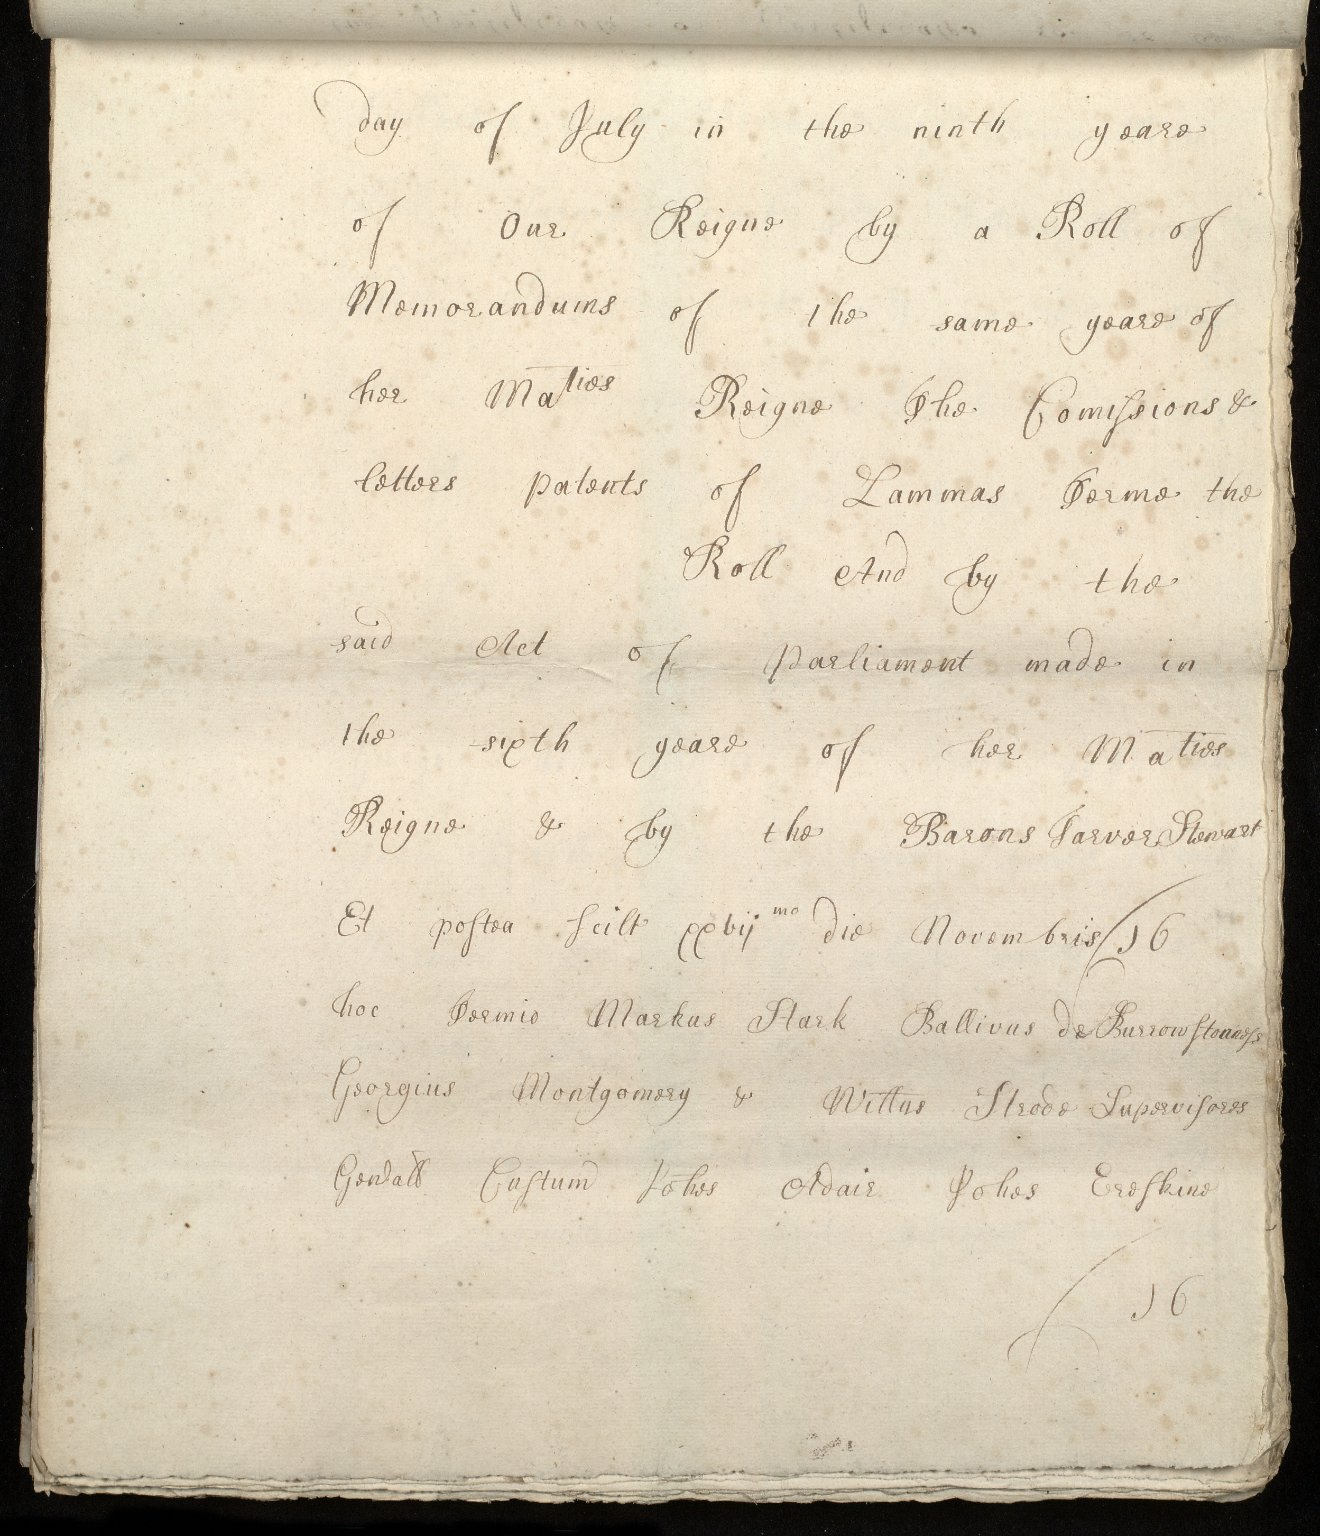 [Commission by Queen Anne to John Adair and others to appoint the town of Borrowstounness (Bo'ness) to be a port and to fix the bounds thereof] [16 of 39]